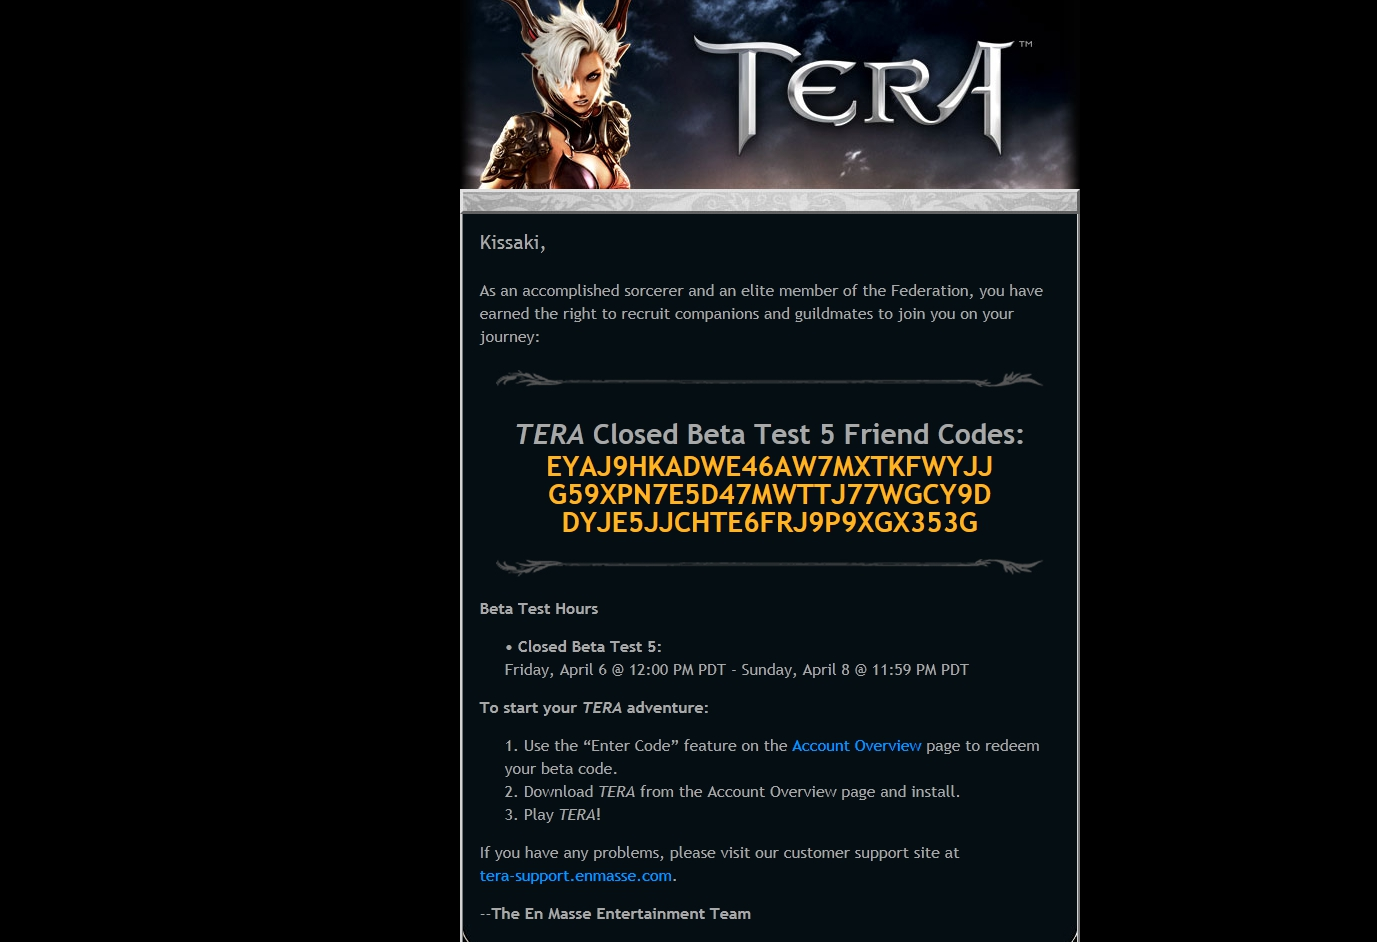 shidobu games beta code friday that time specific open supposed servers test thread spare terabeta thanks tera snagged there